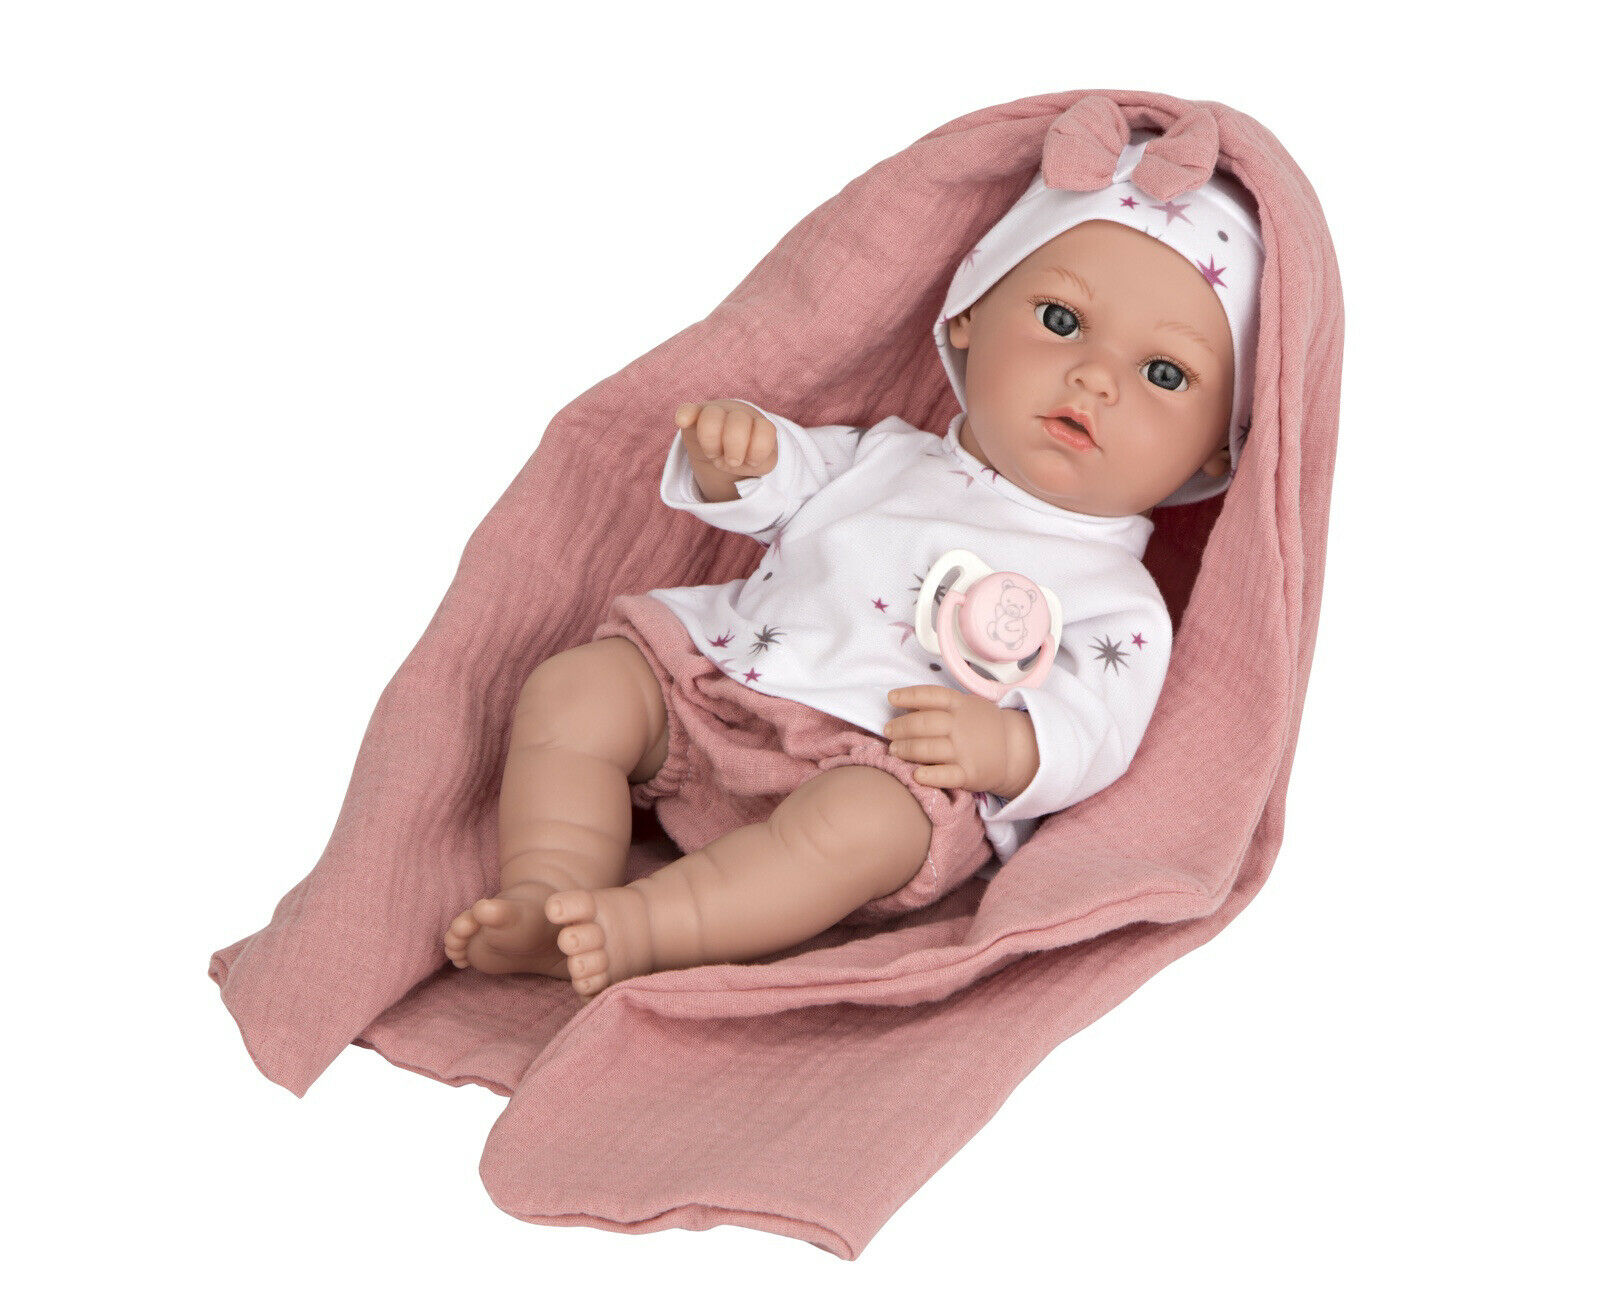 Girls Spanish baby doll Crying & Talking Newborn baby dolls With Accessories